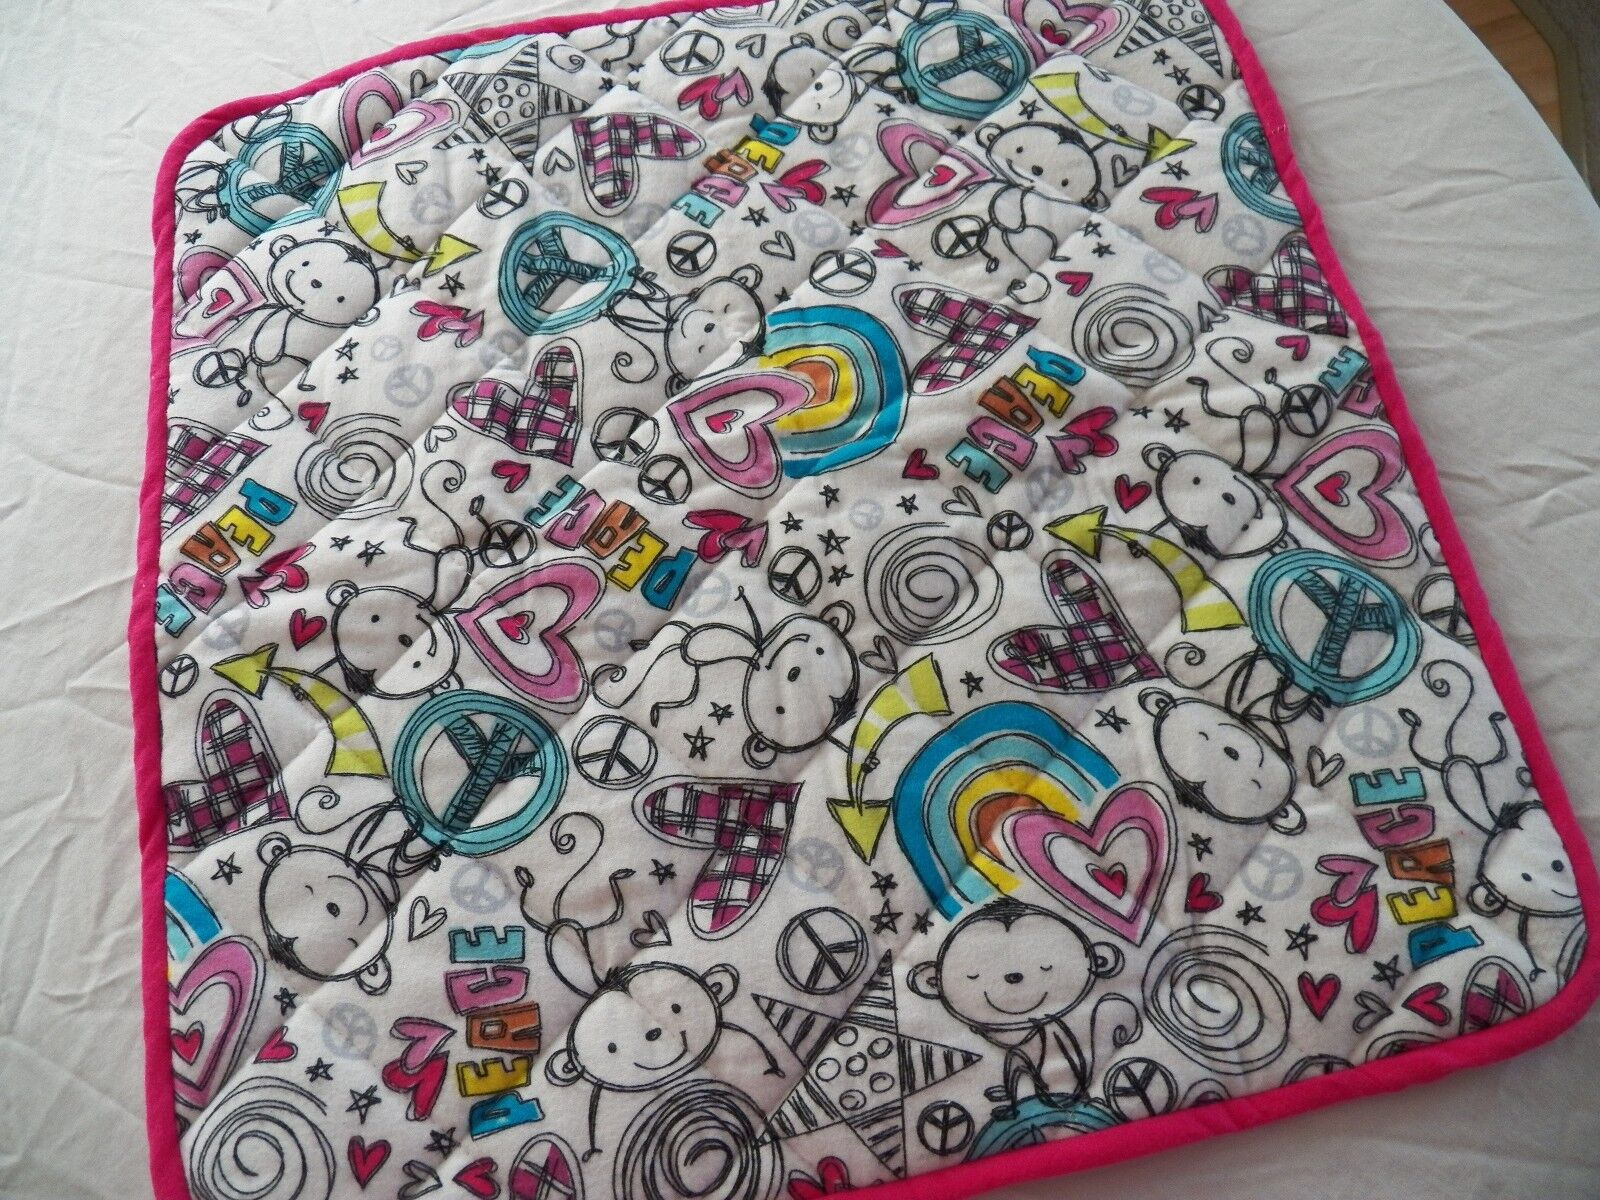 BABY CHANGING PAD Portable Diaper Travel Mat Cotton Washable Padded Handmade NEW 9